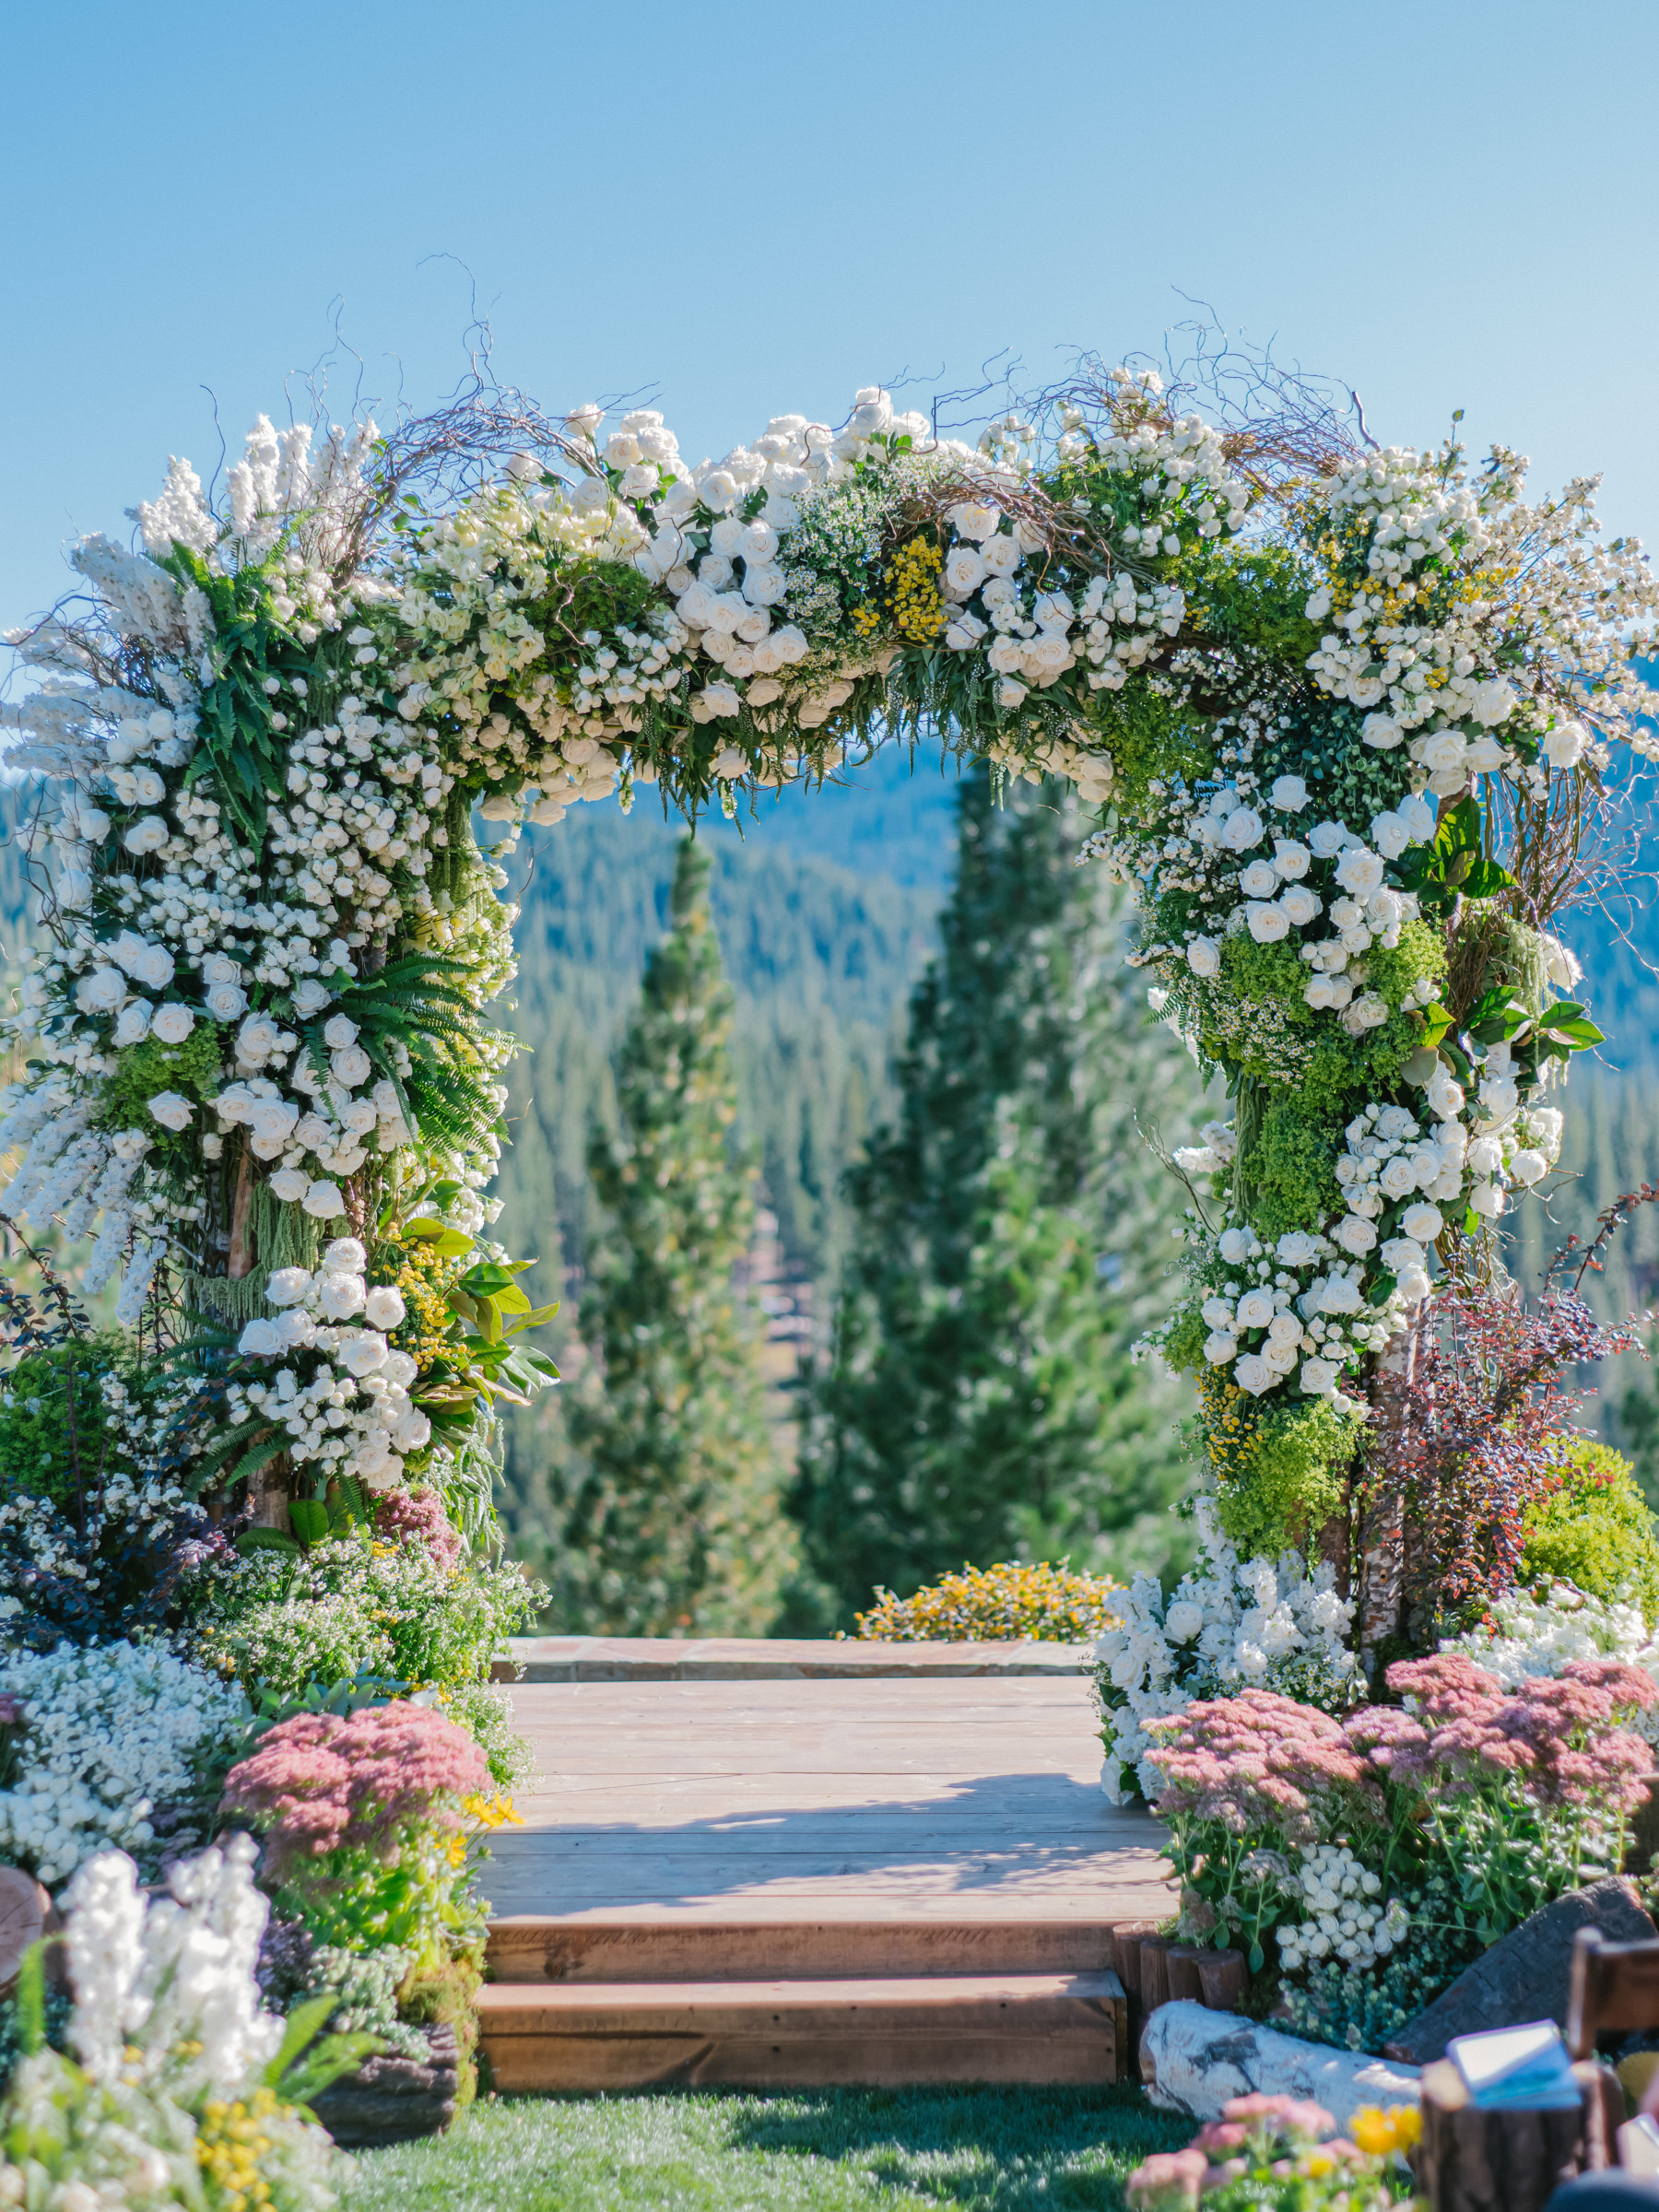 luxury-wedding-arbor-with-roses-and-vines-in-mountain-setting-amyandstuart-photography